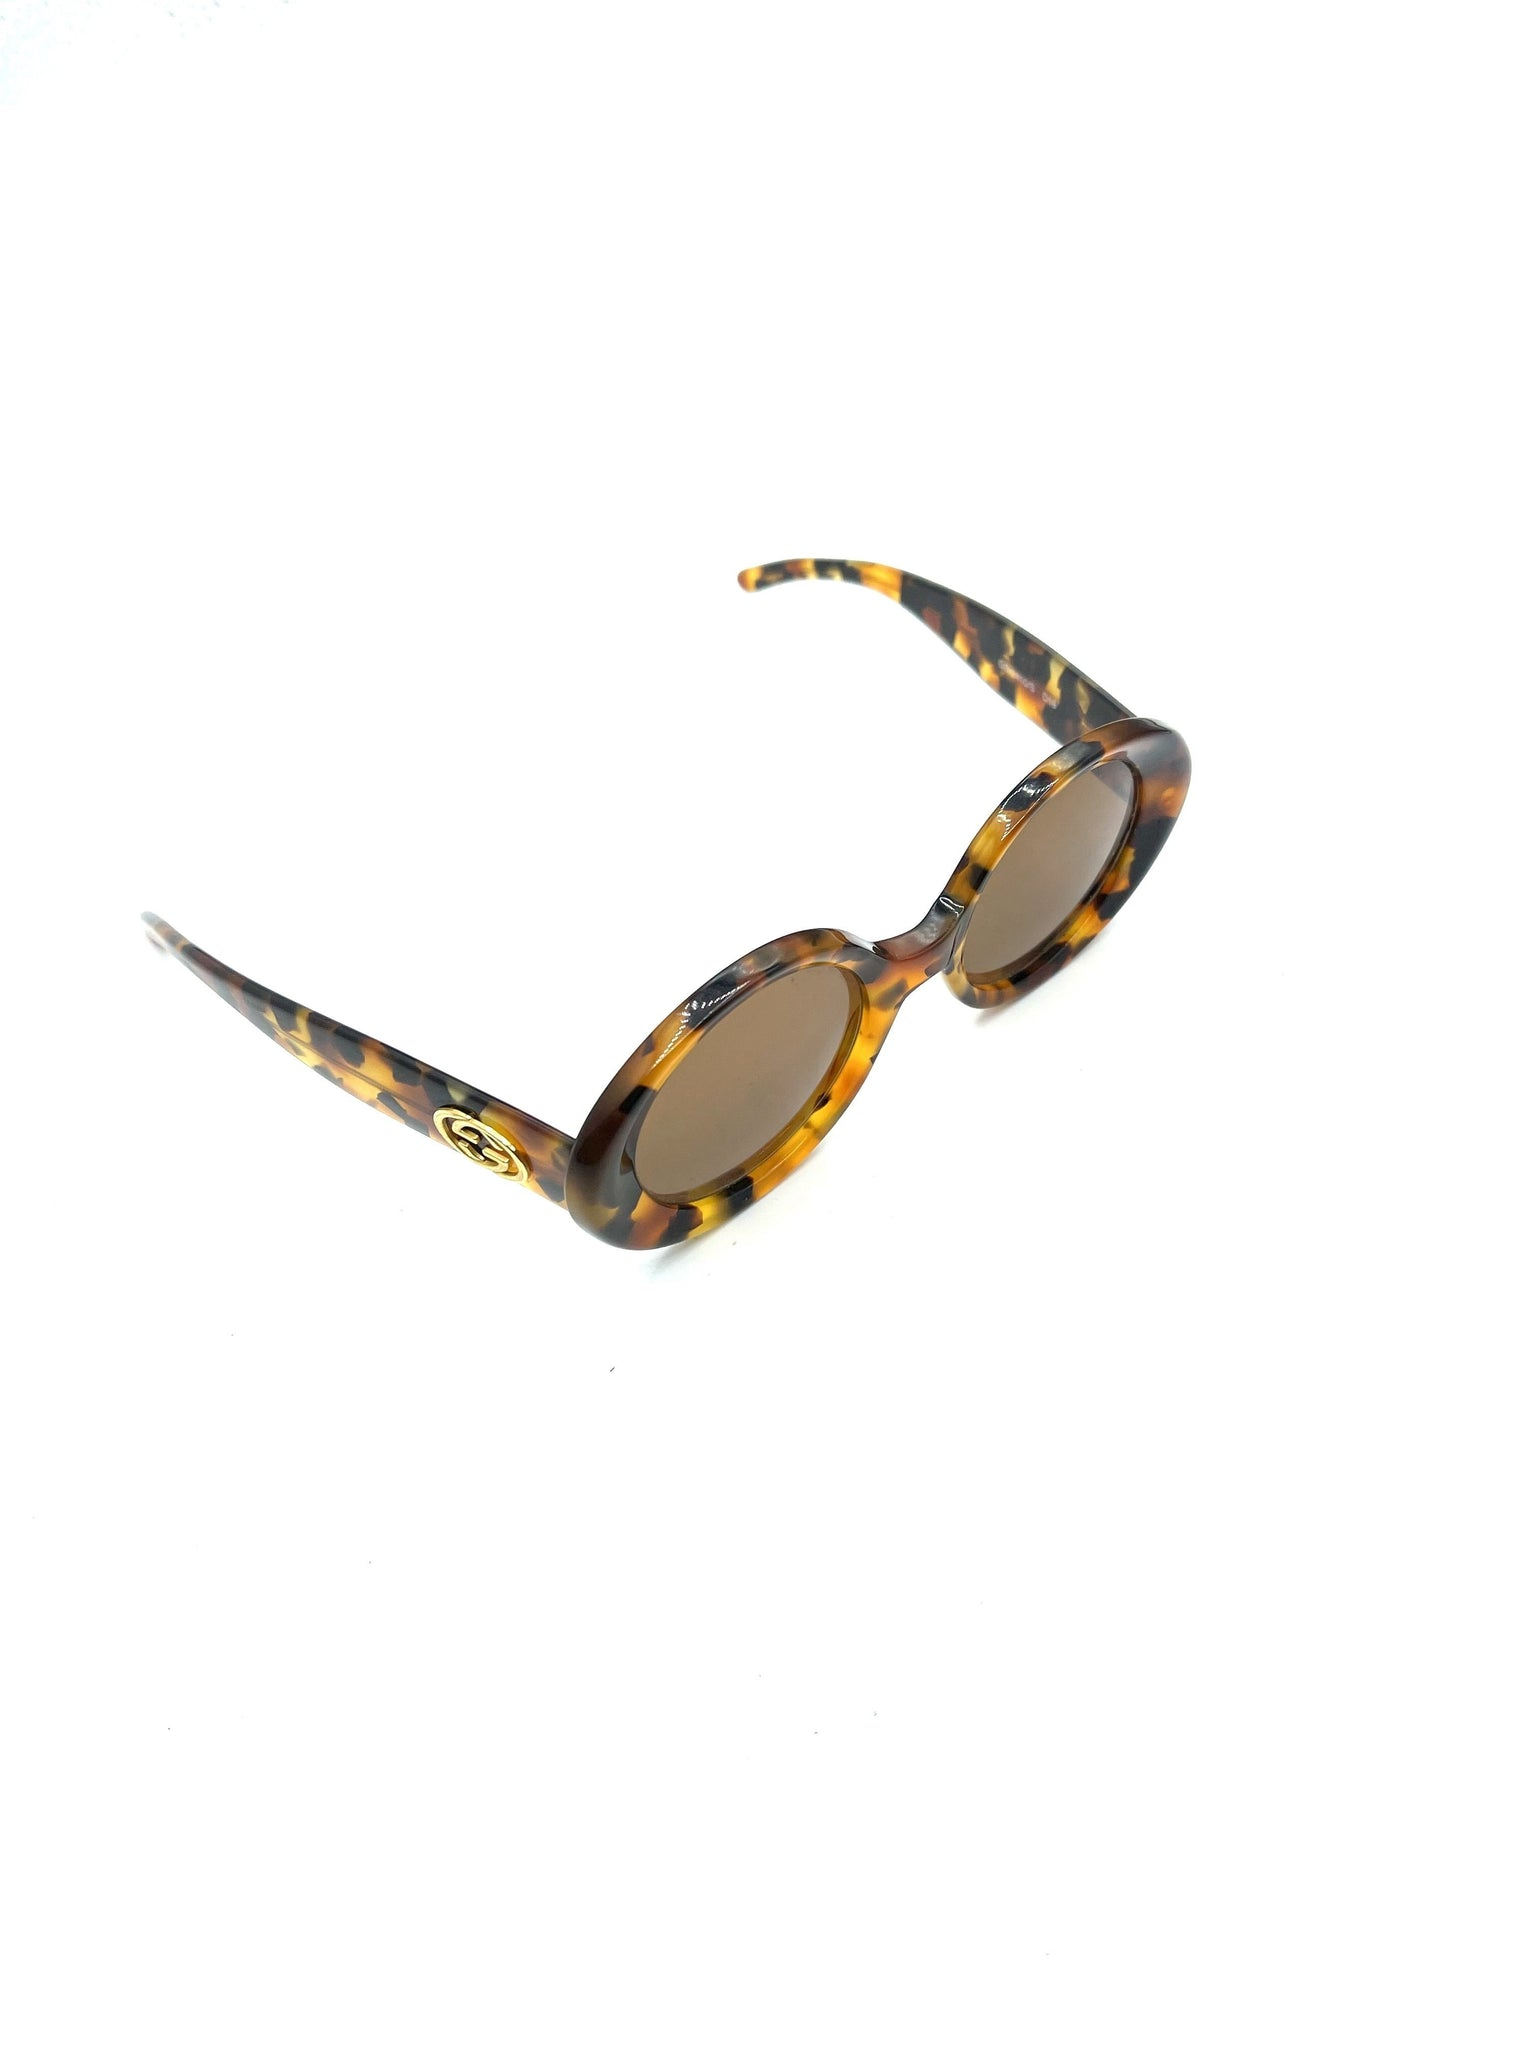 Gucci 90s Tortoiseshell Sunglasses SIDE 2 of 6